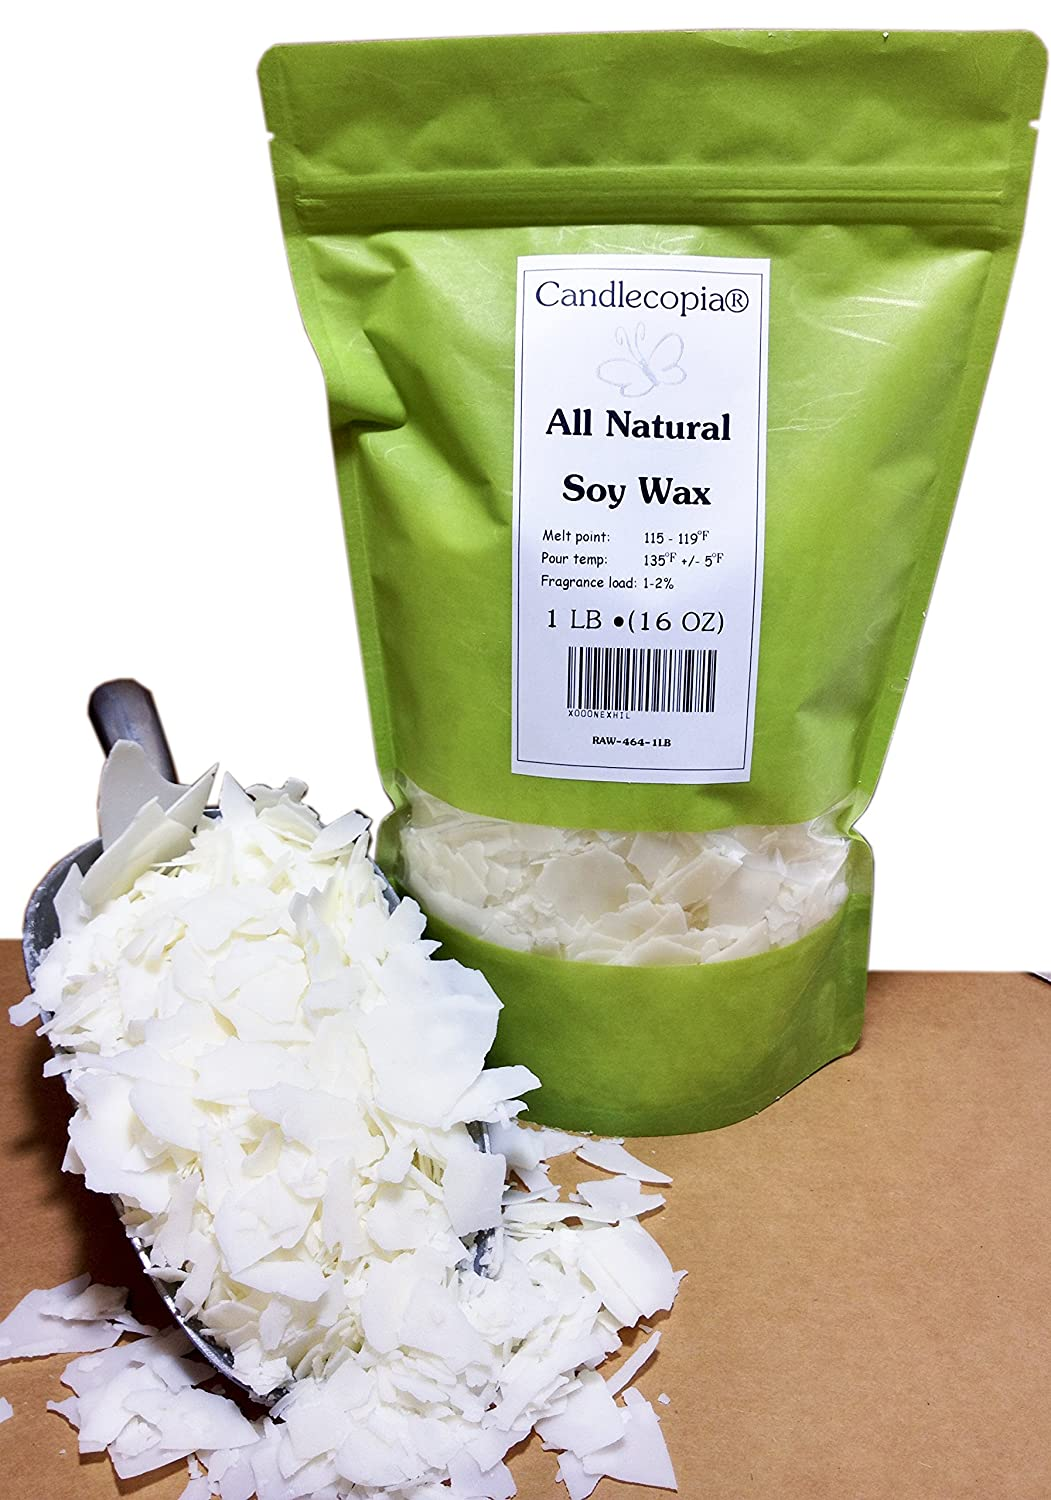 Candlecopia All Natural Soy 464 Candle Making Wax - 1 pound bag RAW-464-1LB